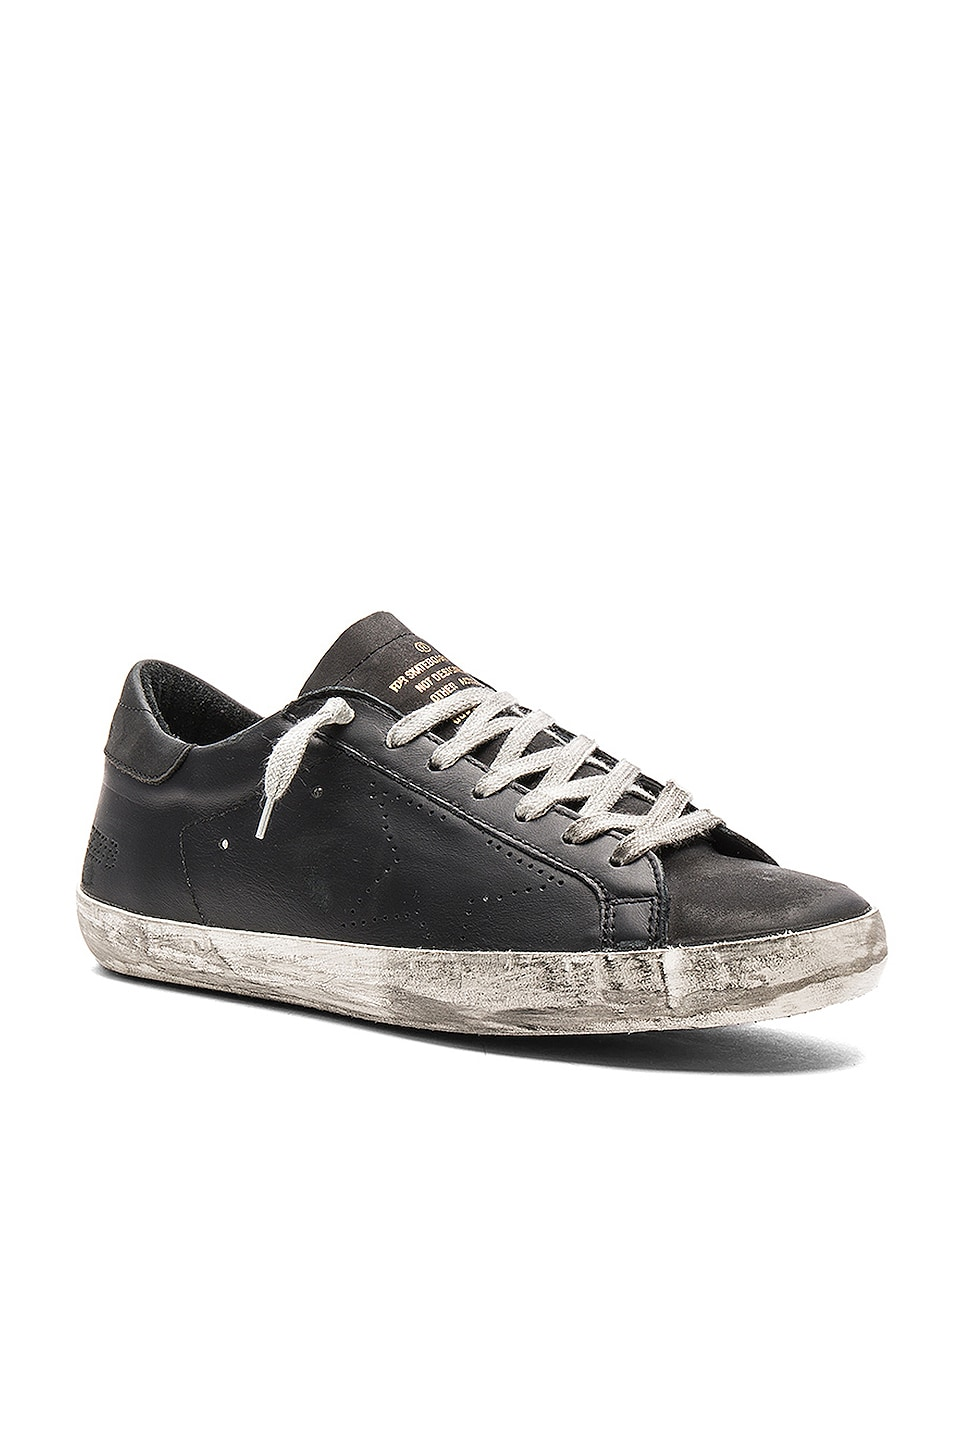 Golden Goose Superstar Sneakers in Black Skate